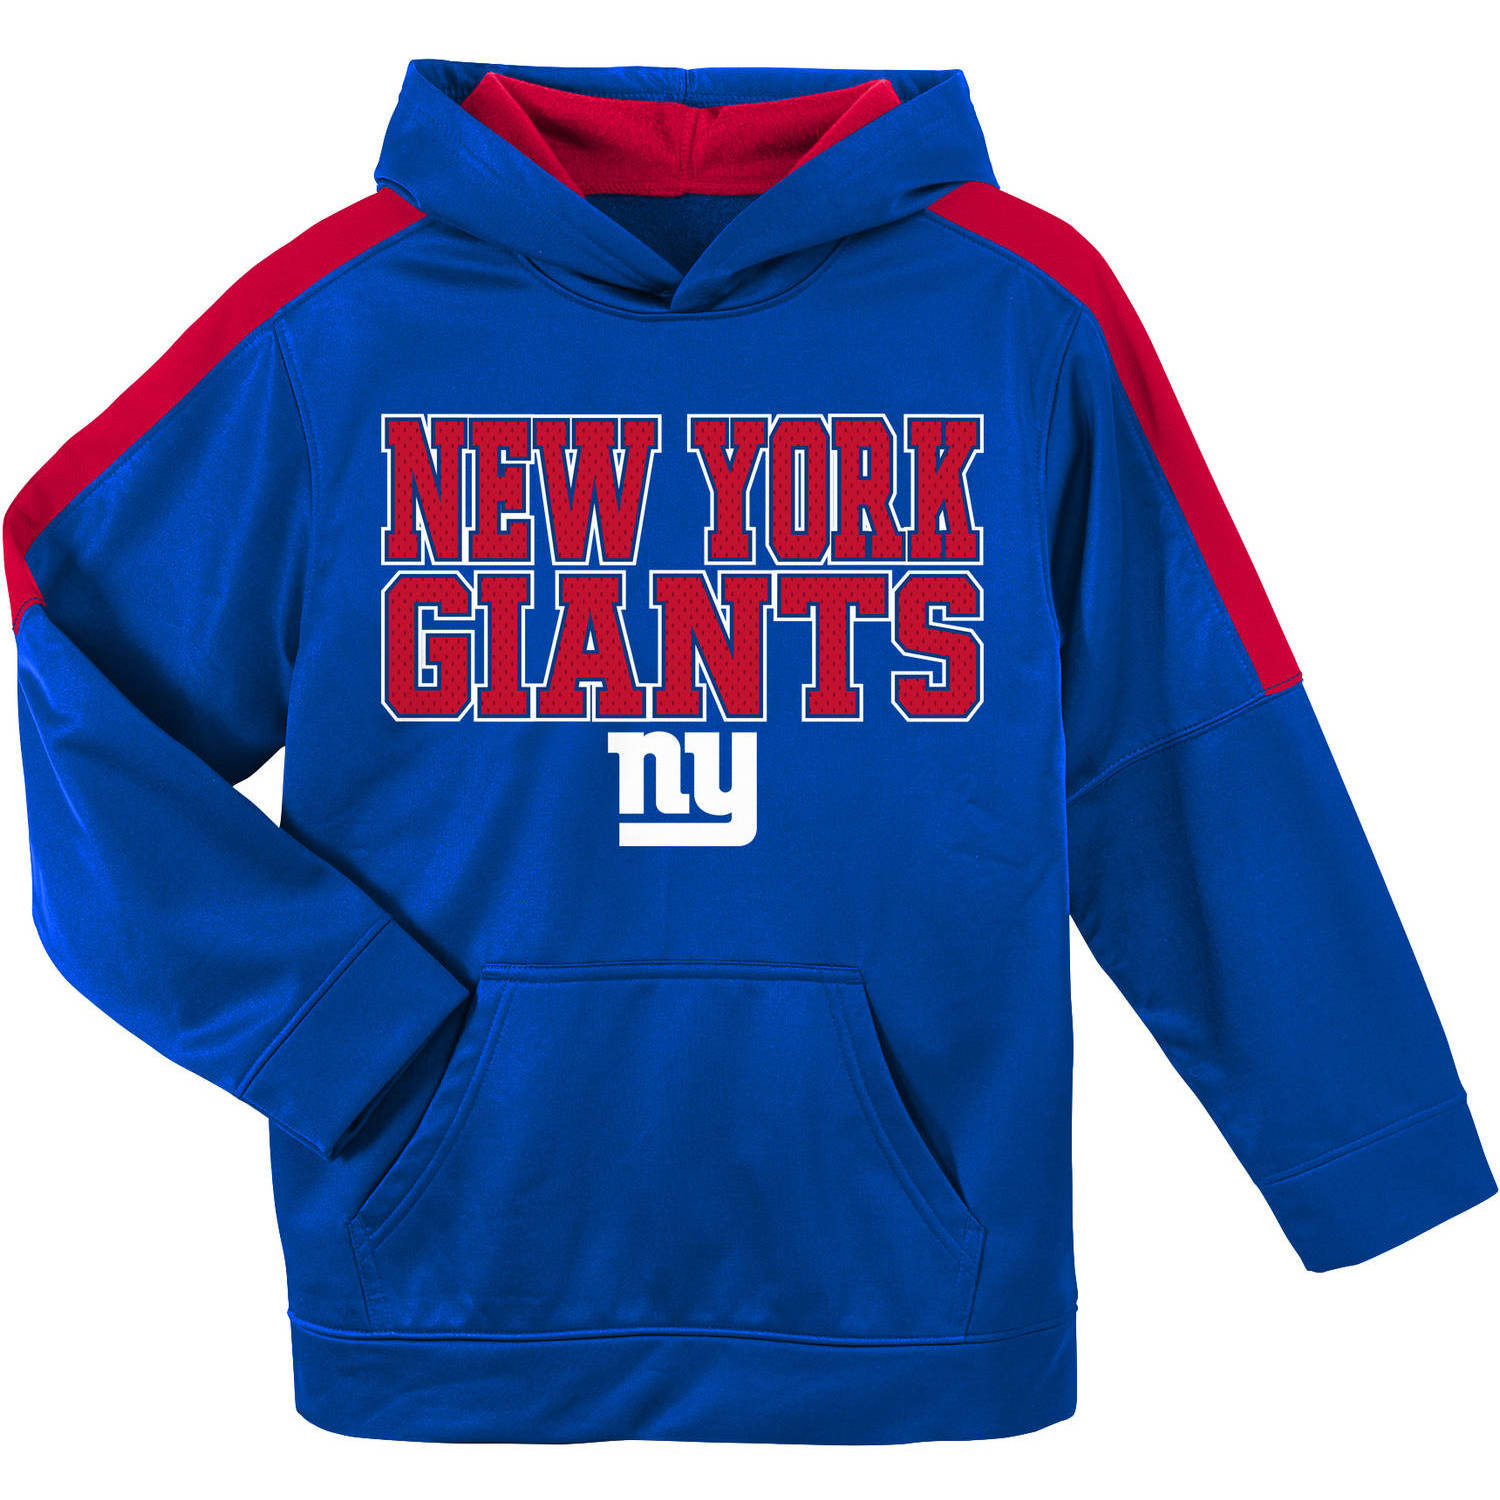 NFL New York Giants Youth Hooded Fleece Top